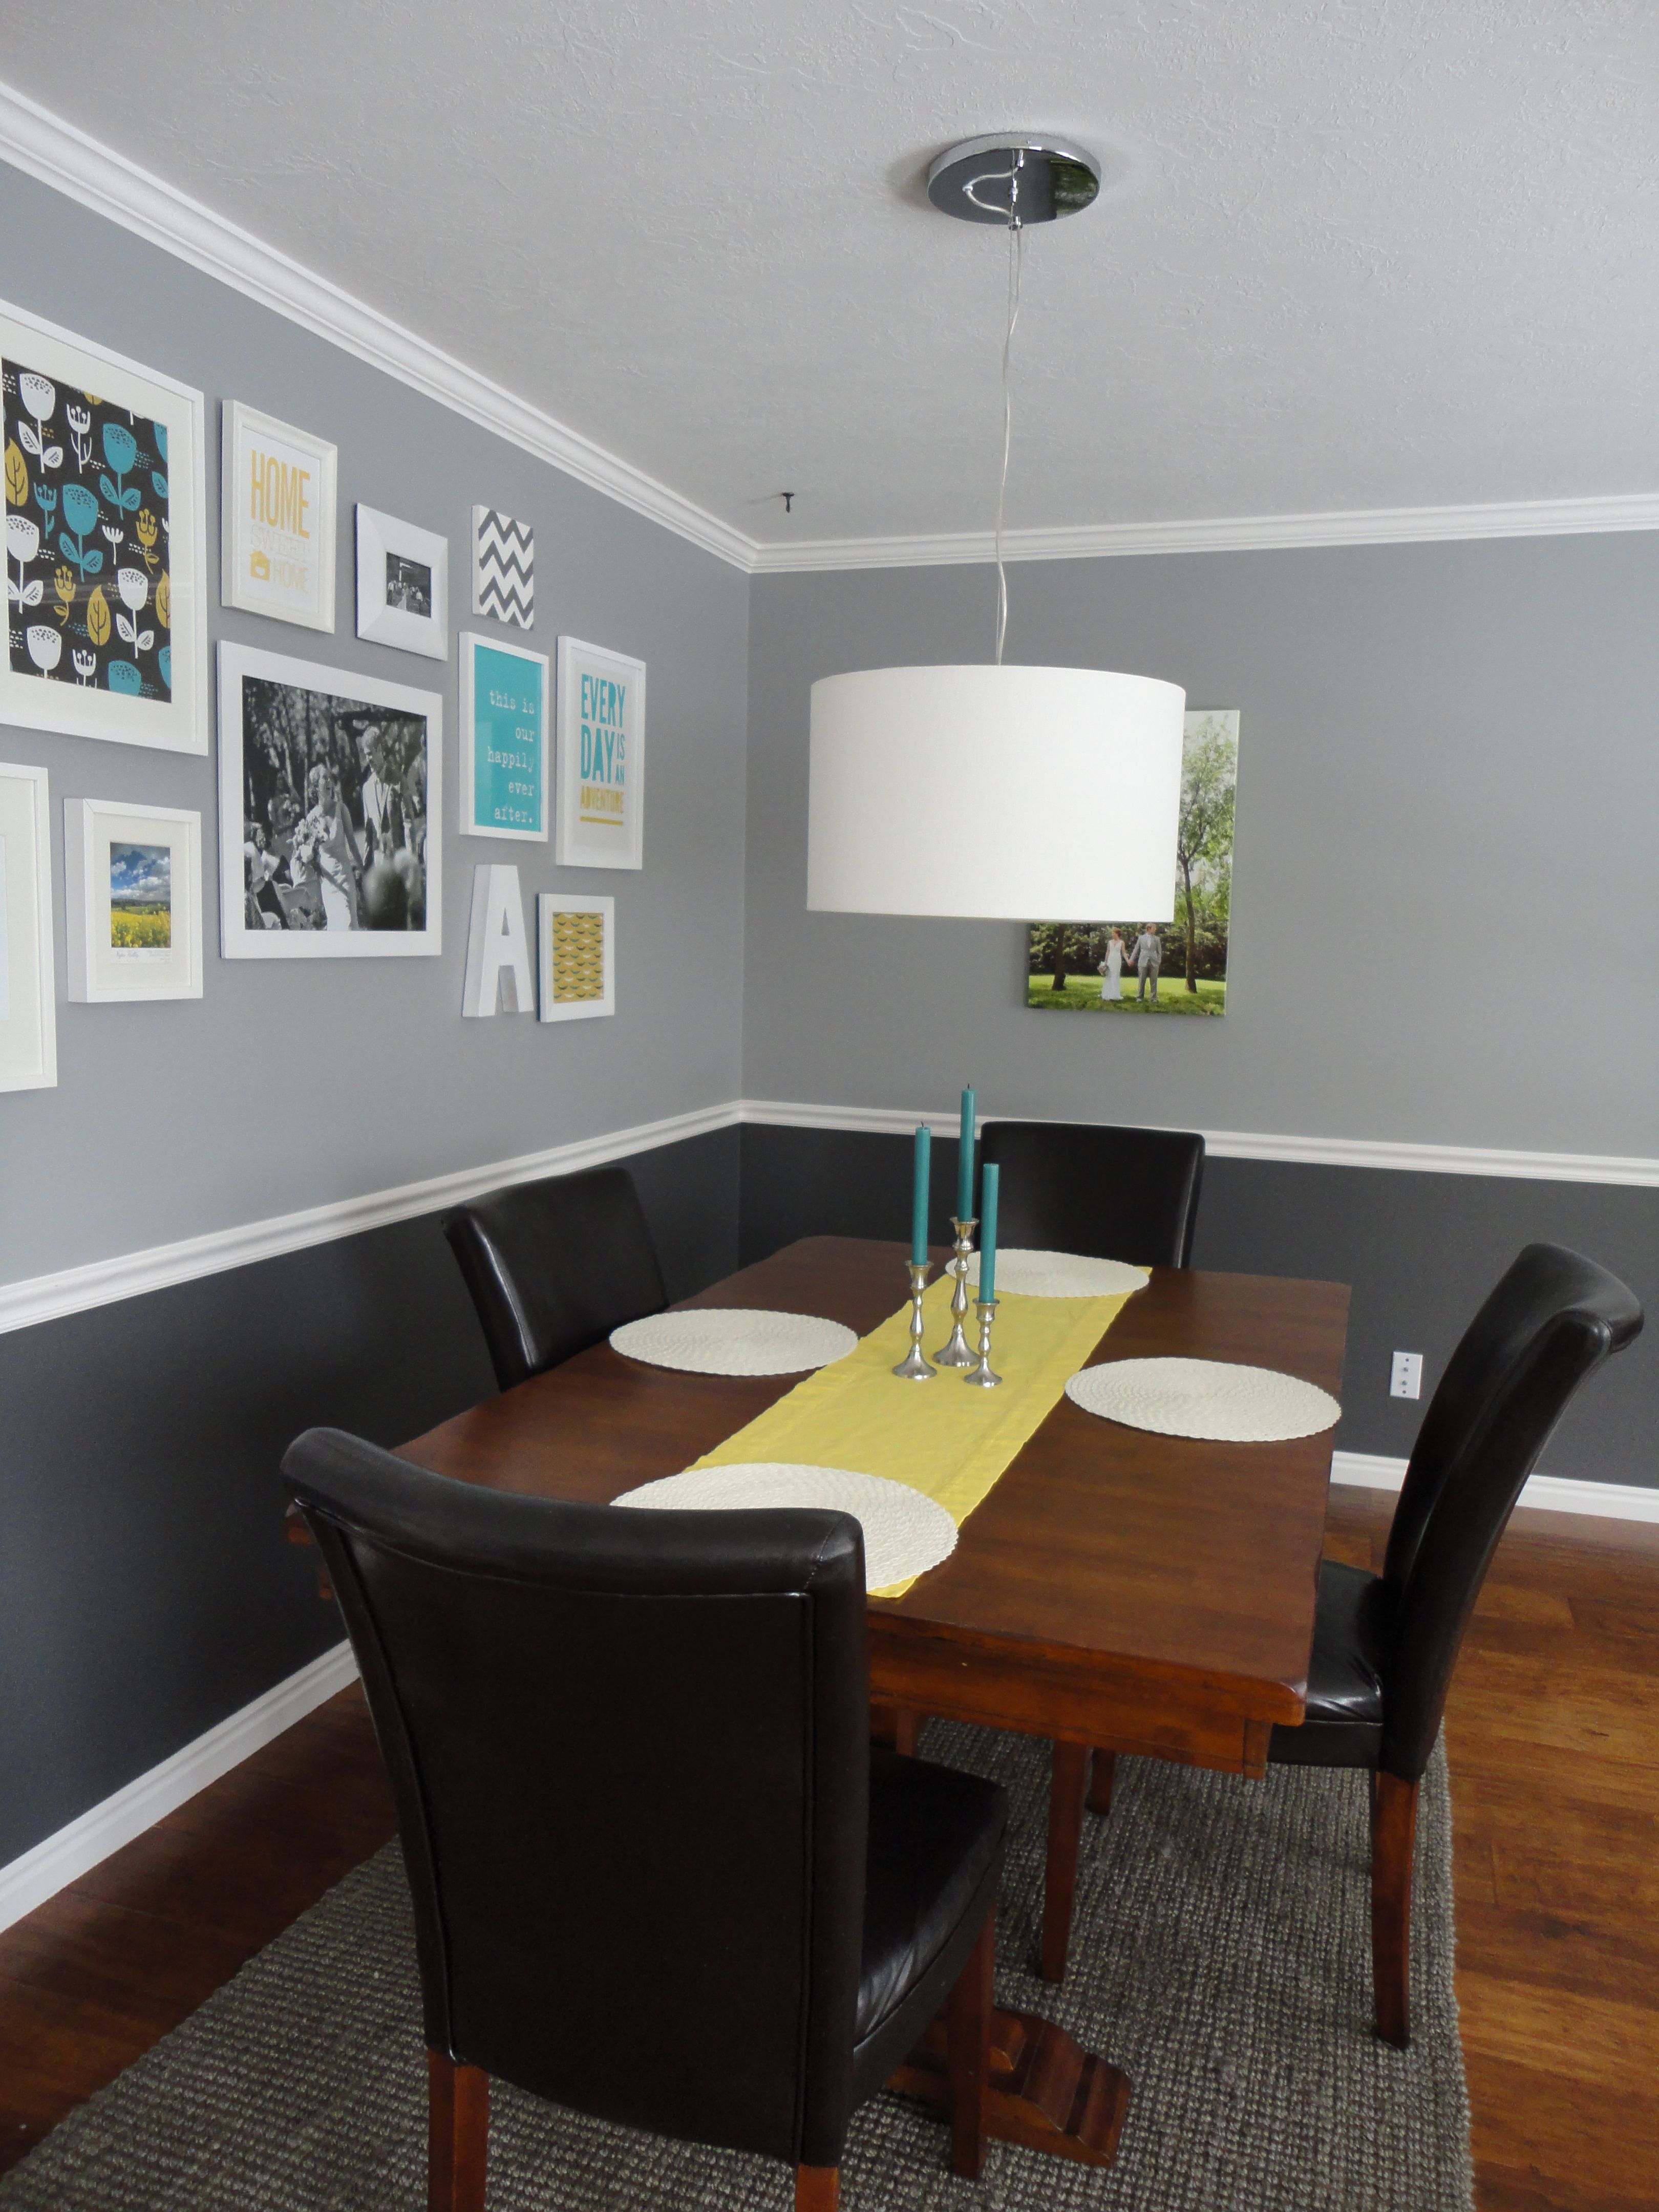 Spice up your space with color in ways that won't take a lot of time or money to achieve. Pin on Basement